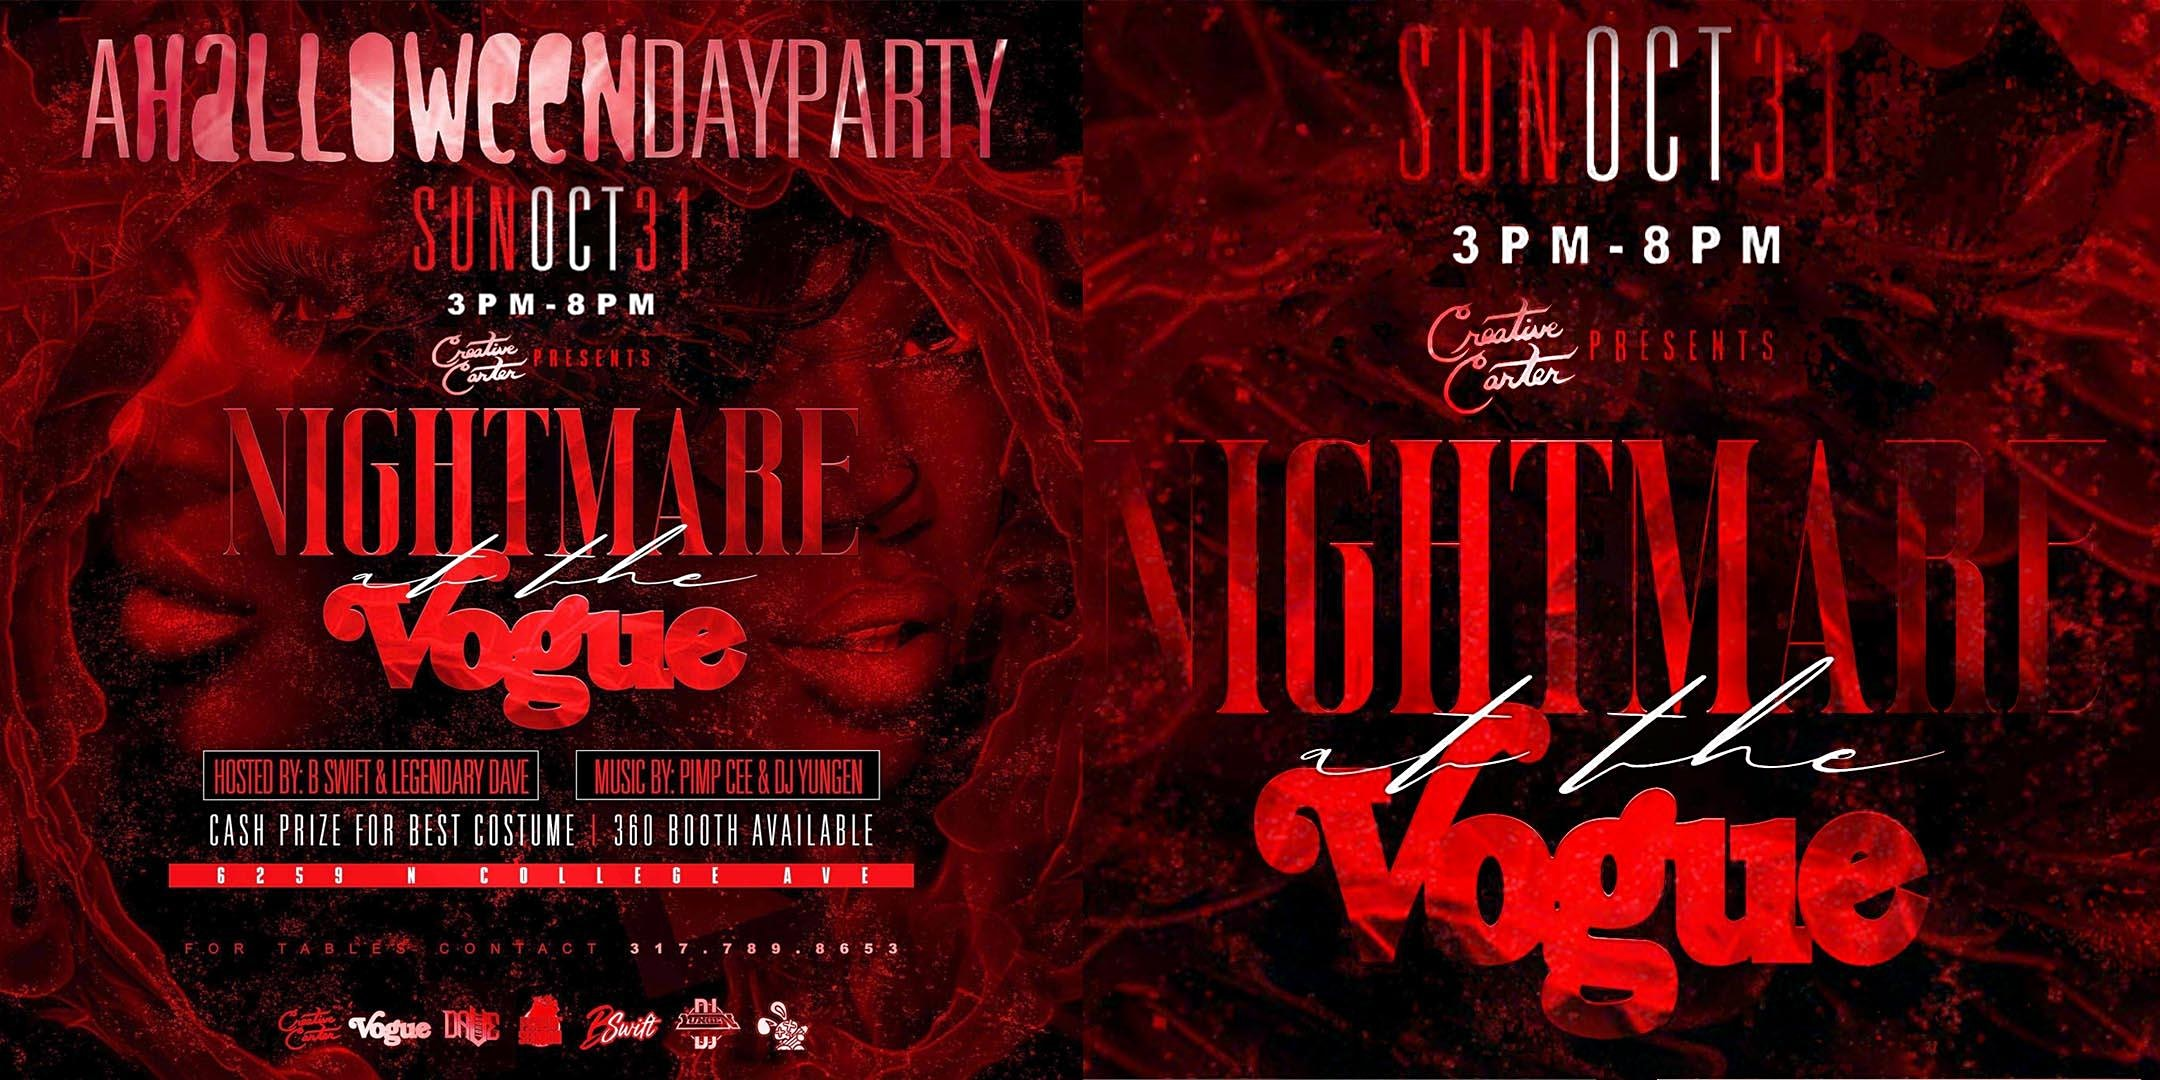 Nightmare at The Vogue: A Halloween Day Party